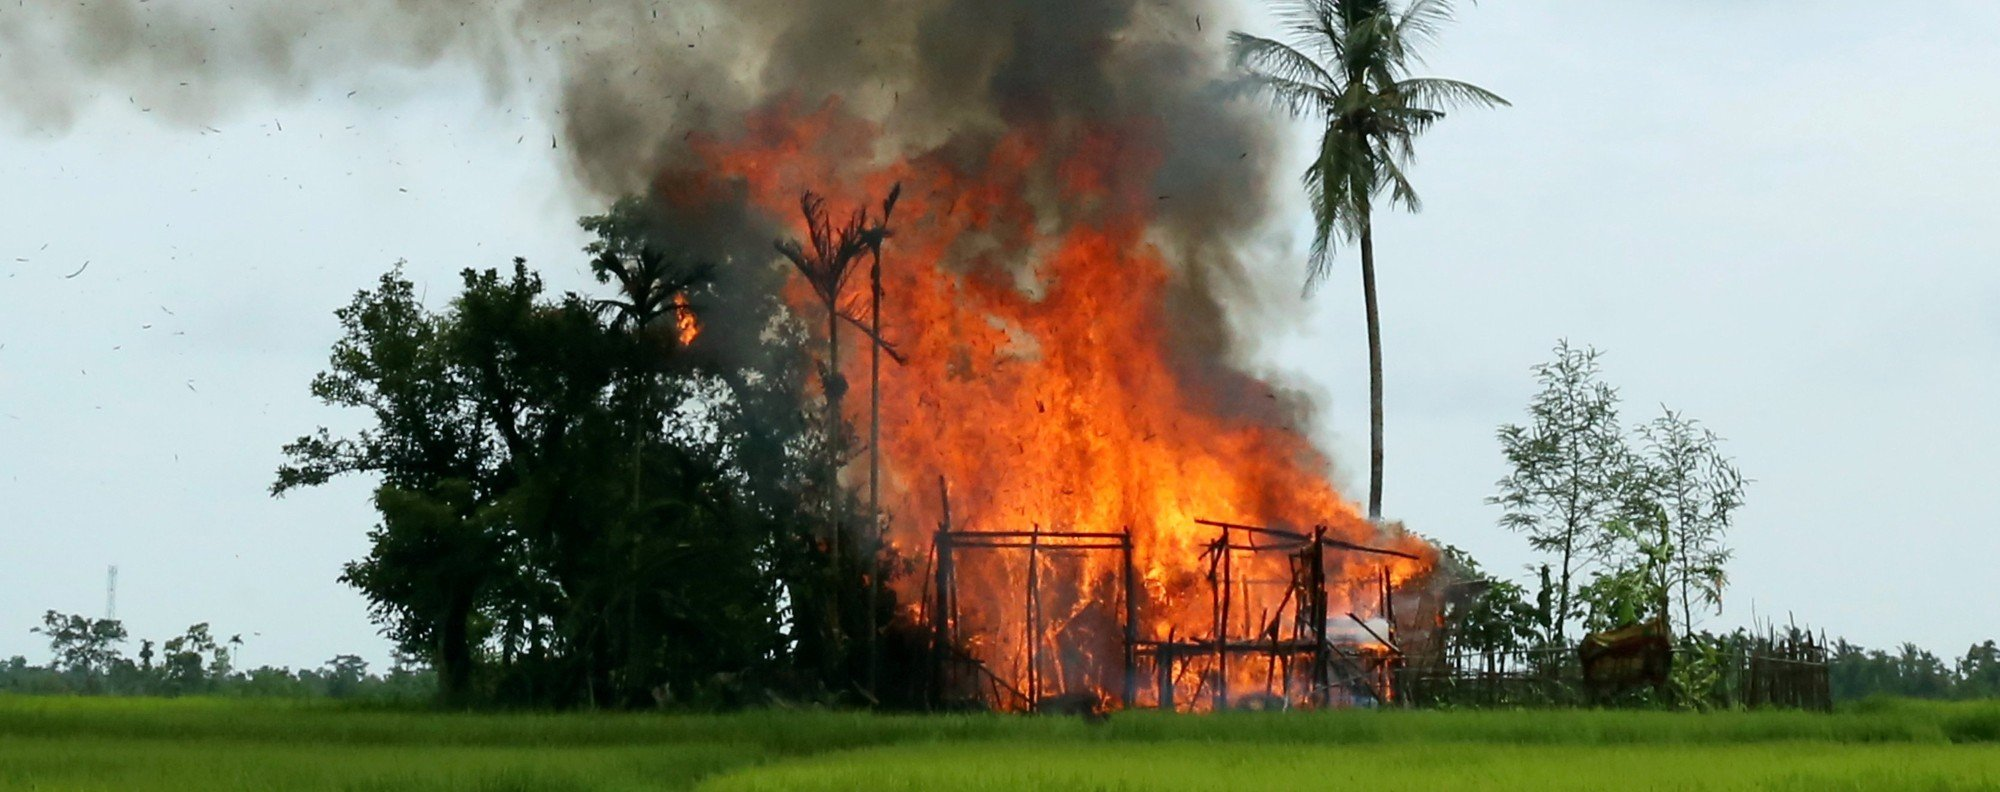 A house on fire in Rakhine state. Photo: Reuters